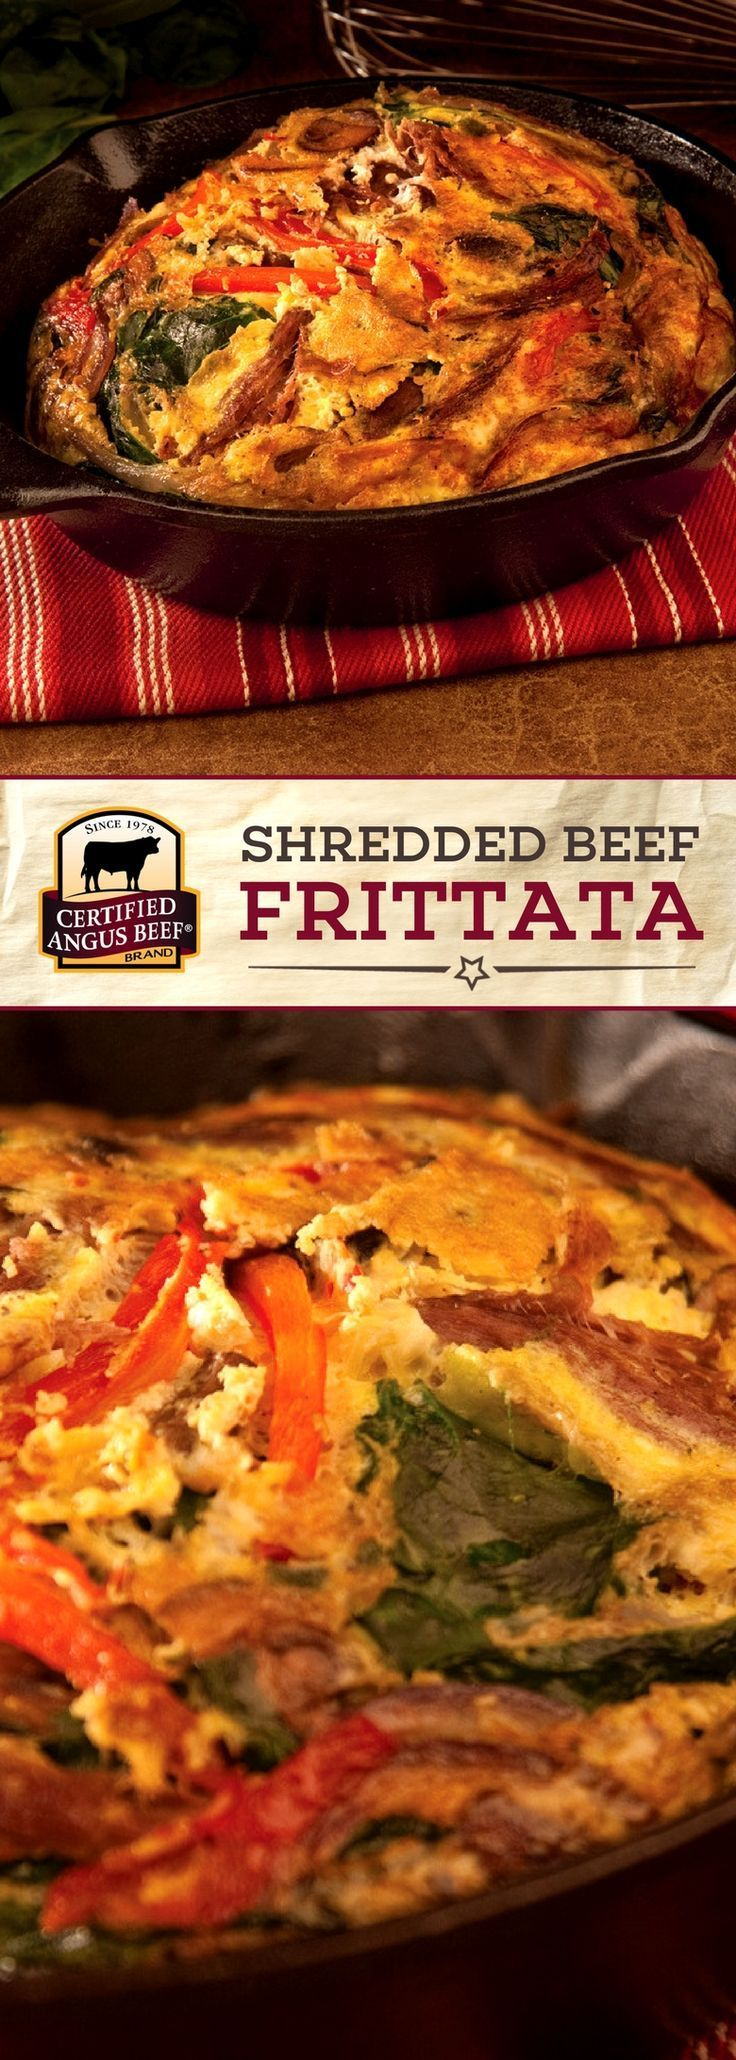 Certified Angus Beef®️️️️️️️ brand Shredded Beef Frittata is an EASY recipe that makes an impressive breakfast or dinner! Eggs, peppers, and goat cheese mix together deliciously with mushrooms, spinach, and the BEST pot roast for a satisfying meal.  #bestangusbeef #certifiedangusbeef #beefrecipe #easyrecipes #breakfastrecipes